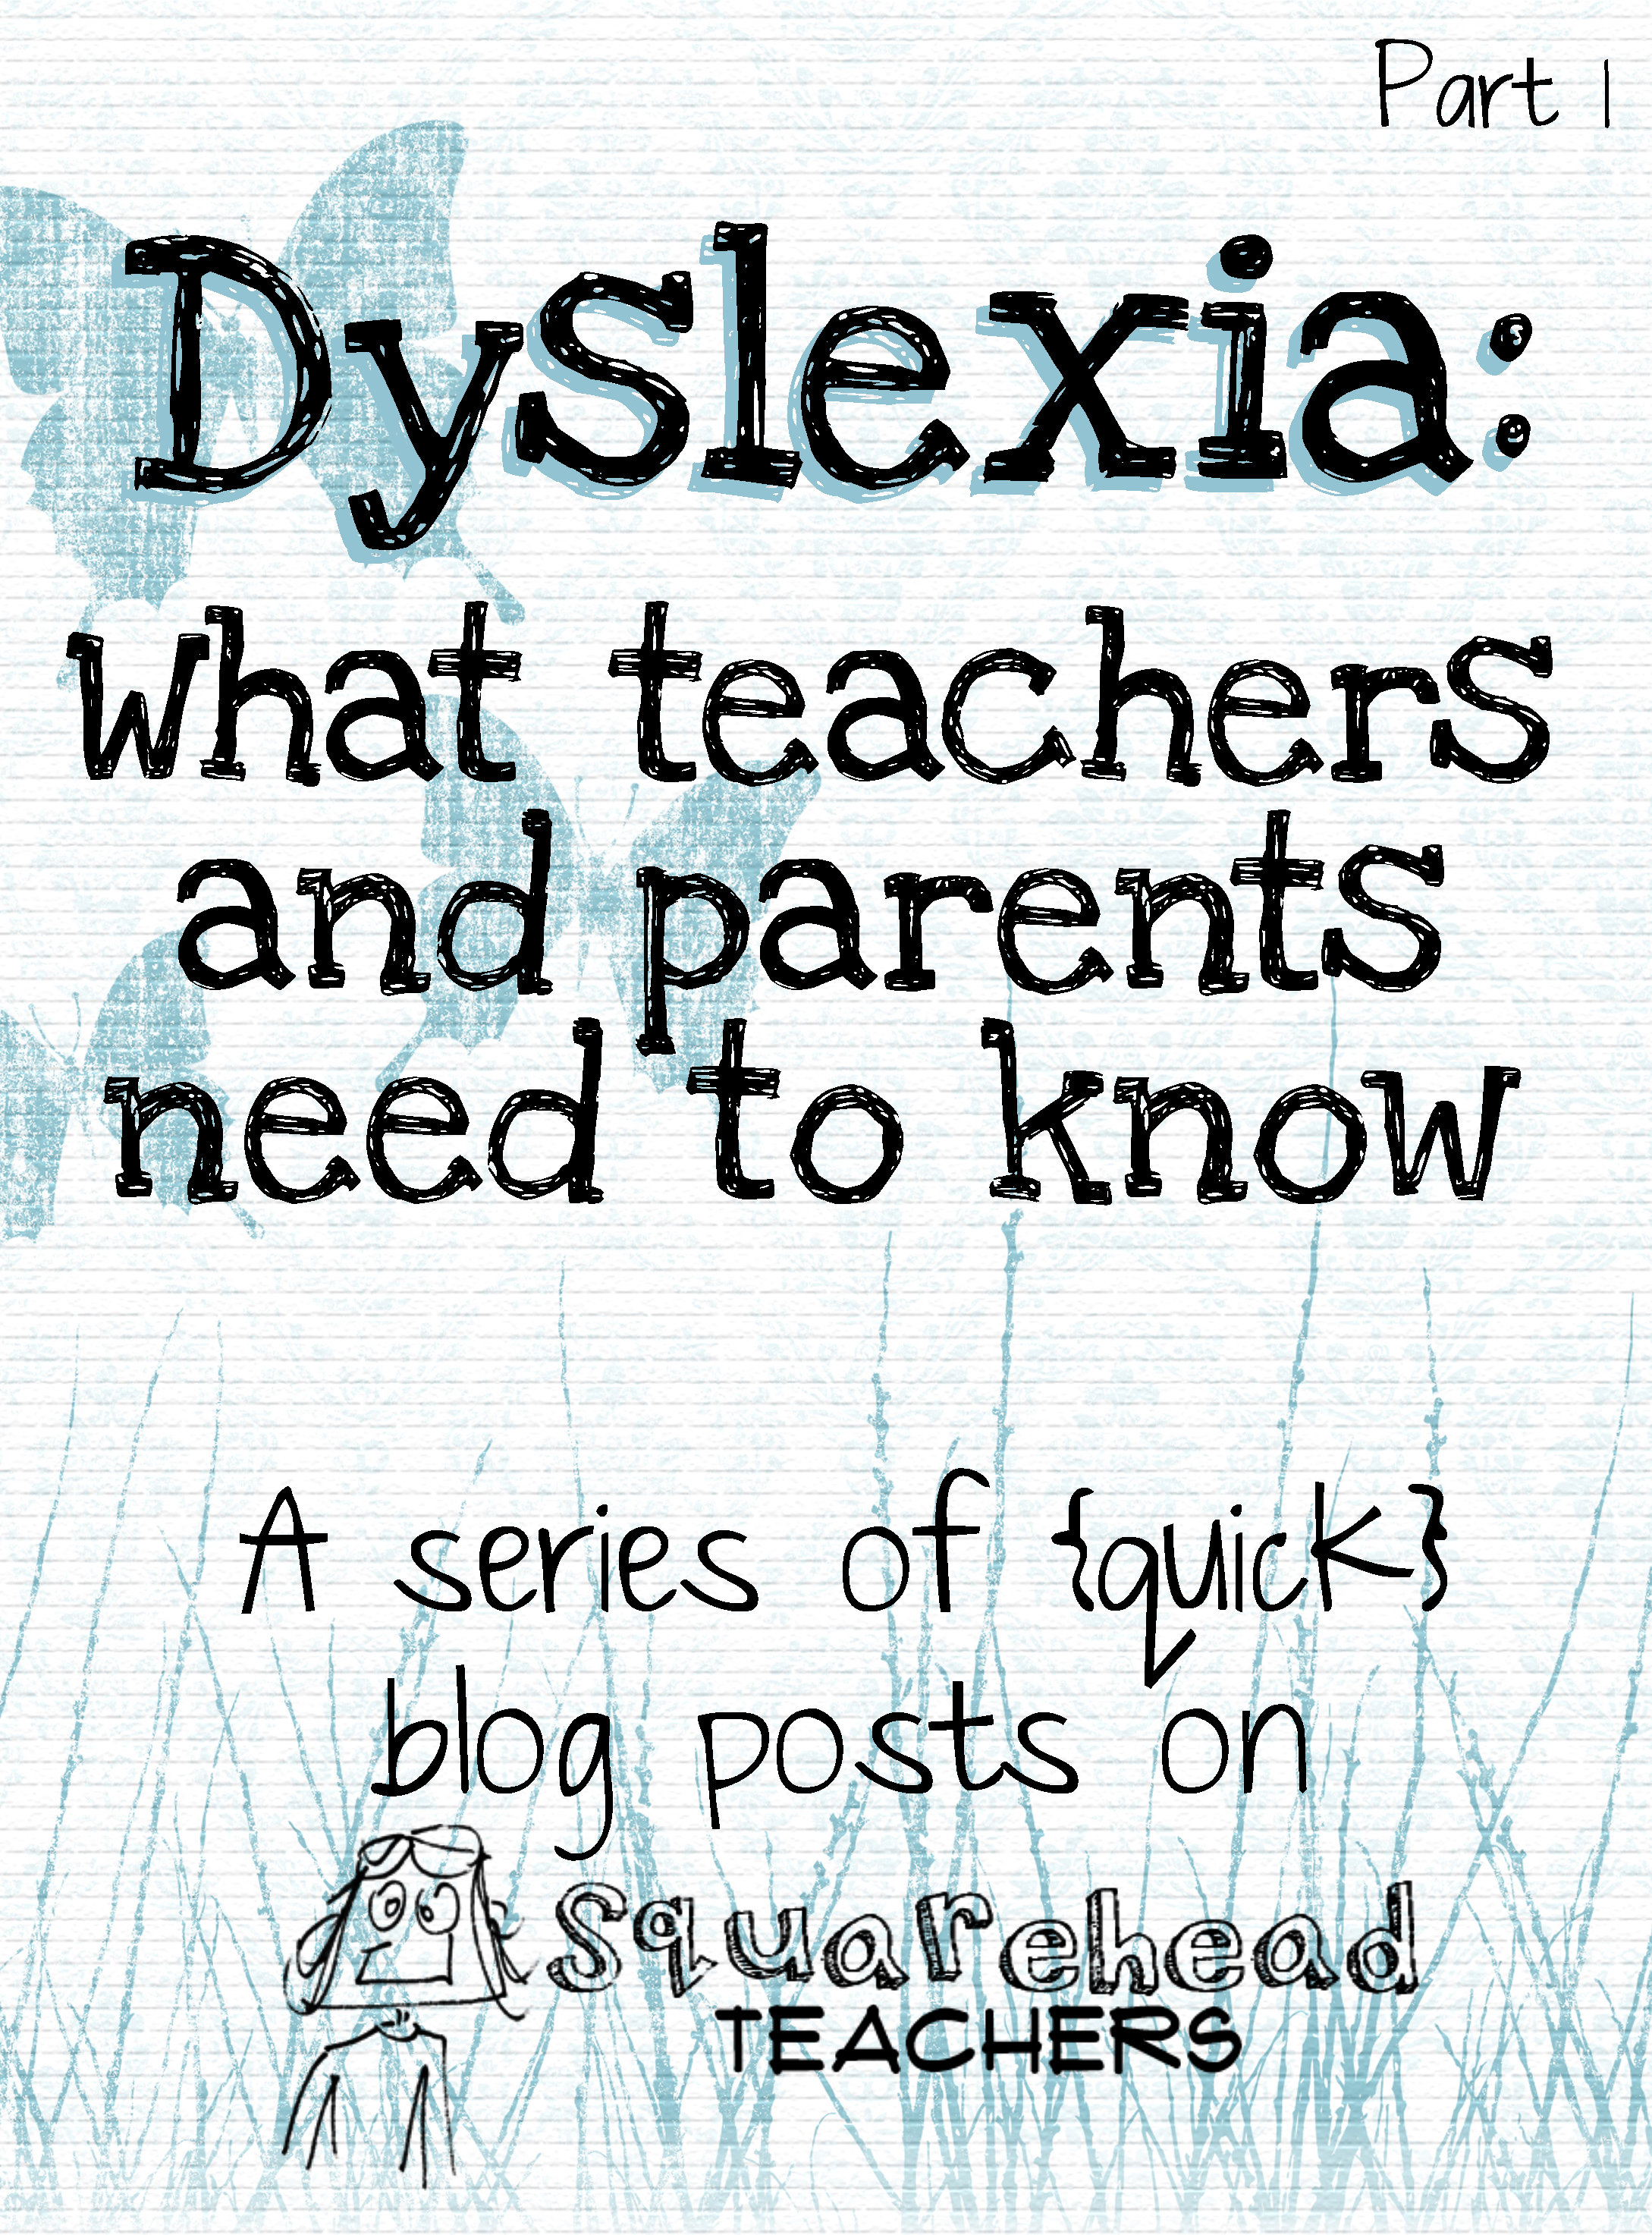 Do not expect a dyslexic to copy text from a board or book